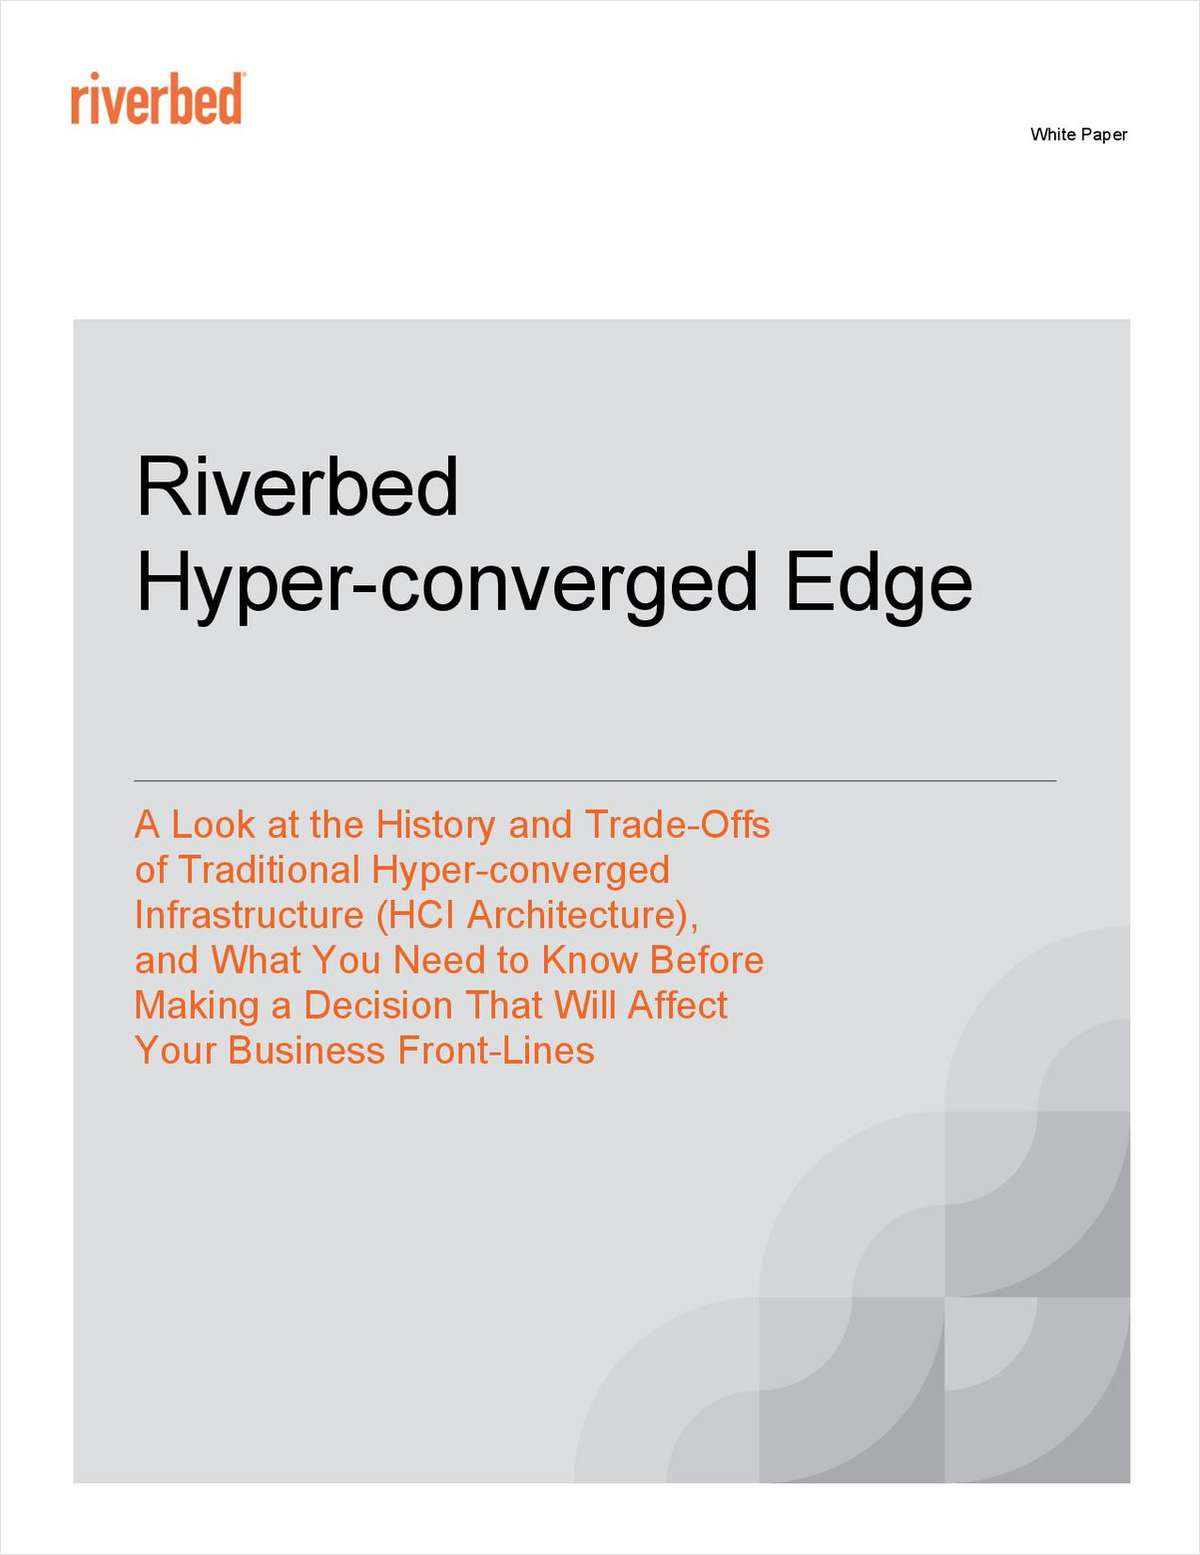 Riverbed Hyper-converged Edge